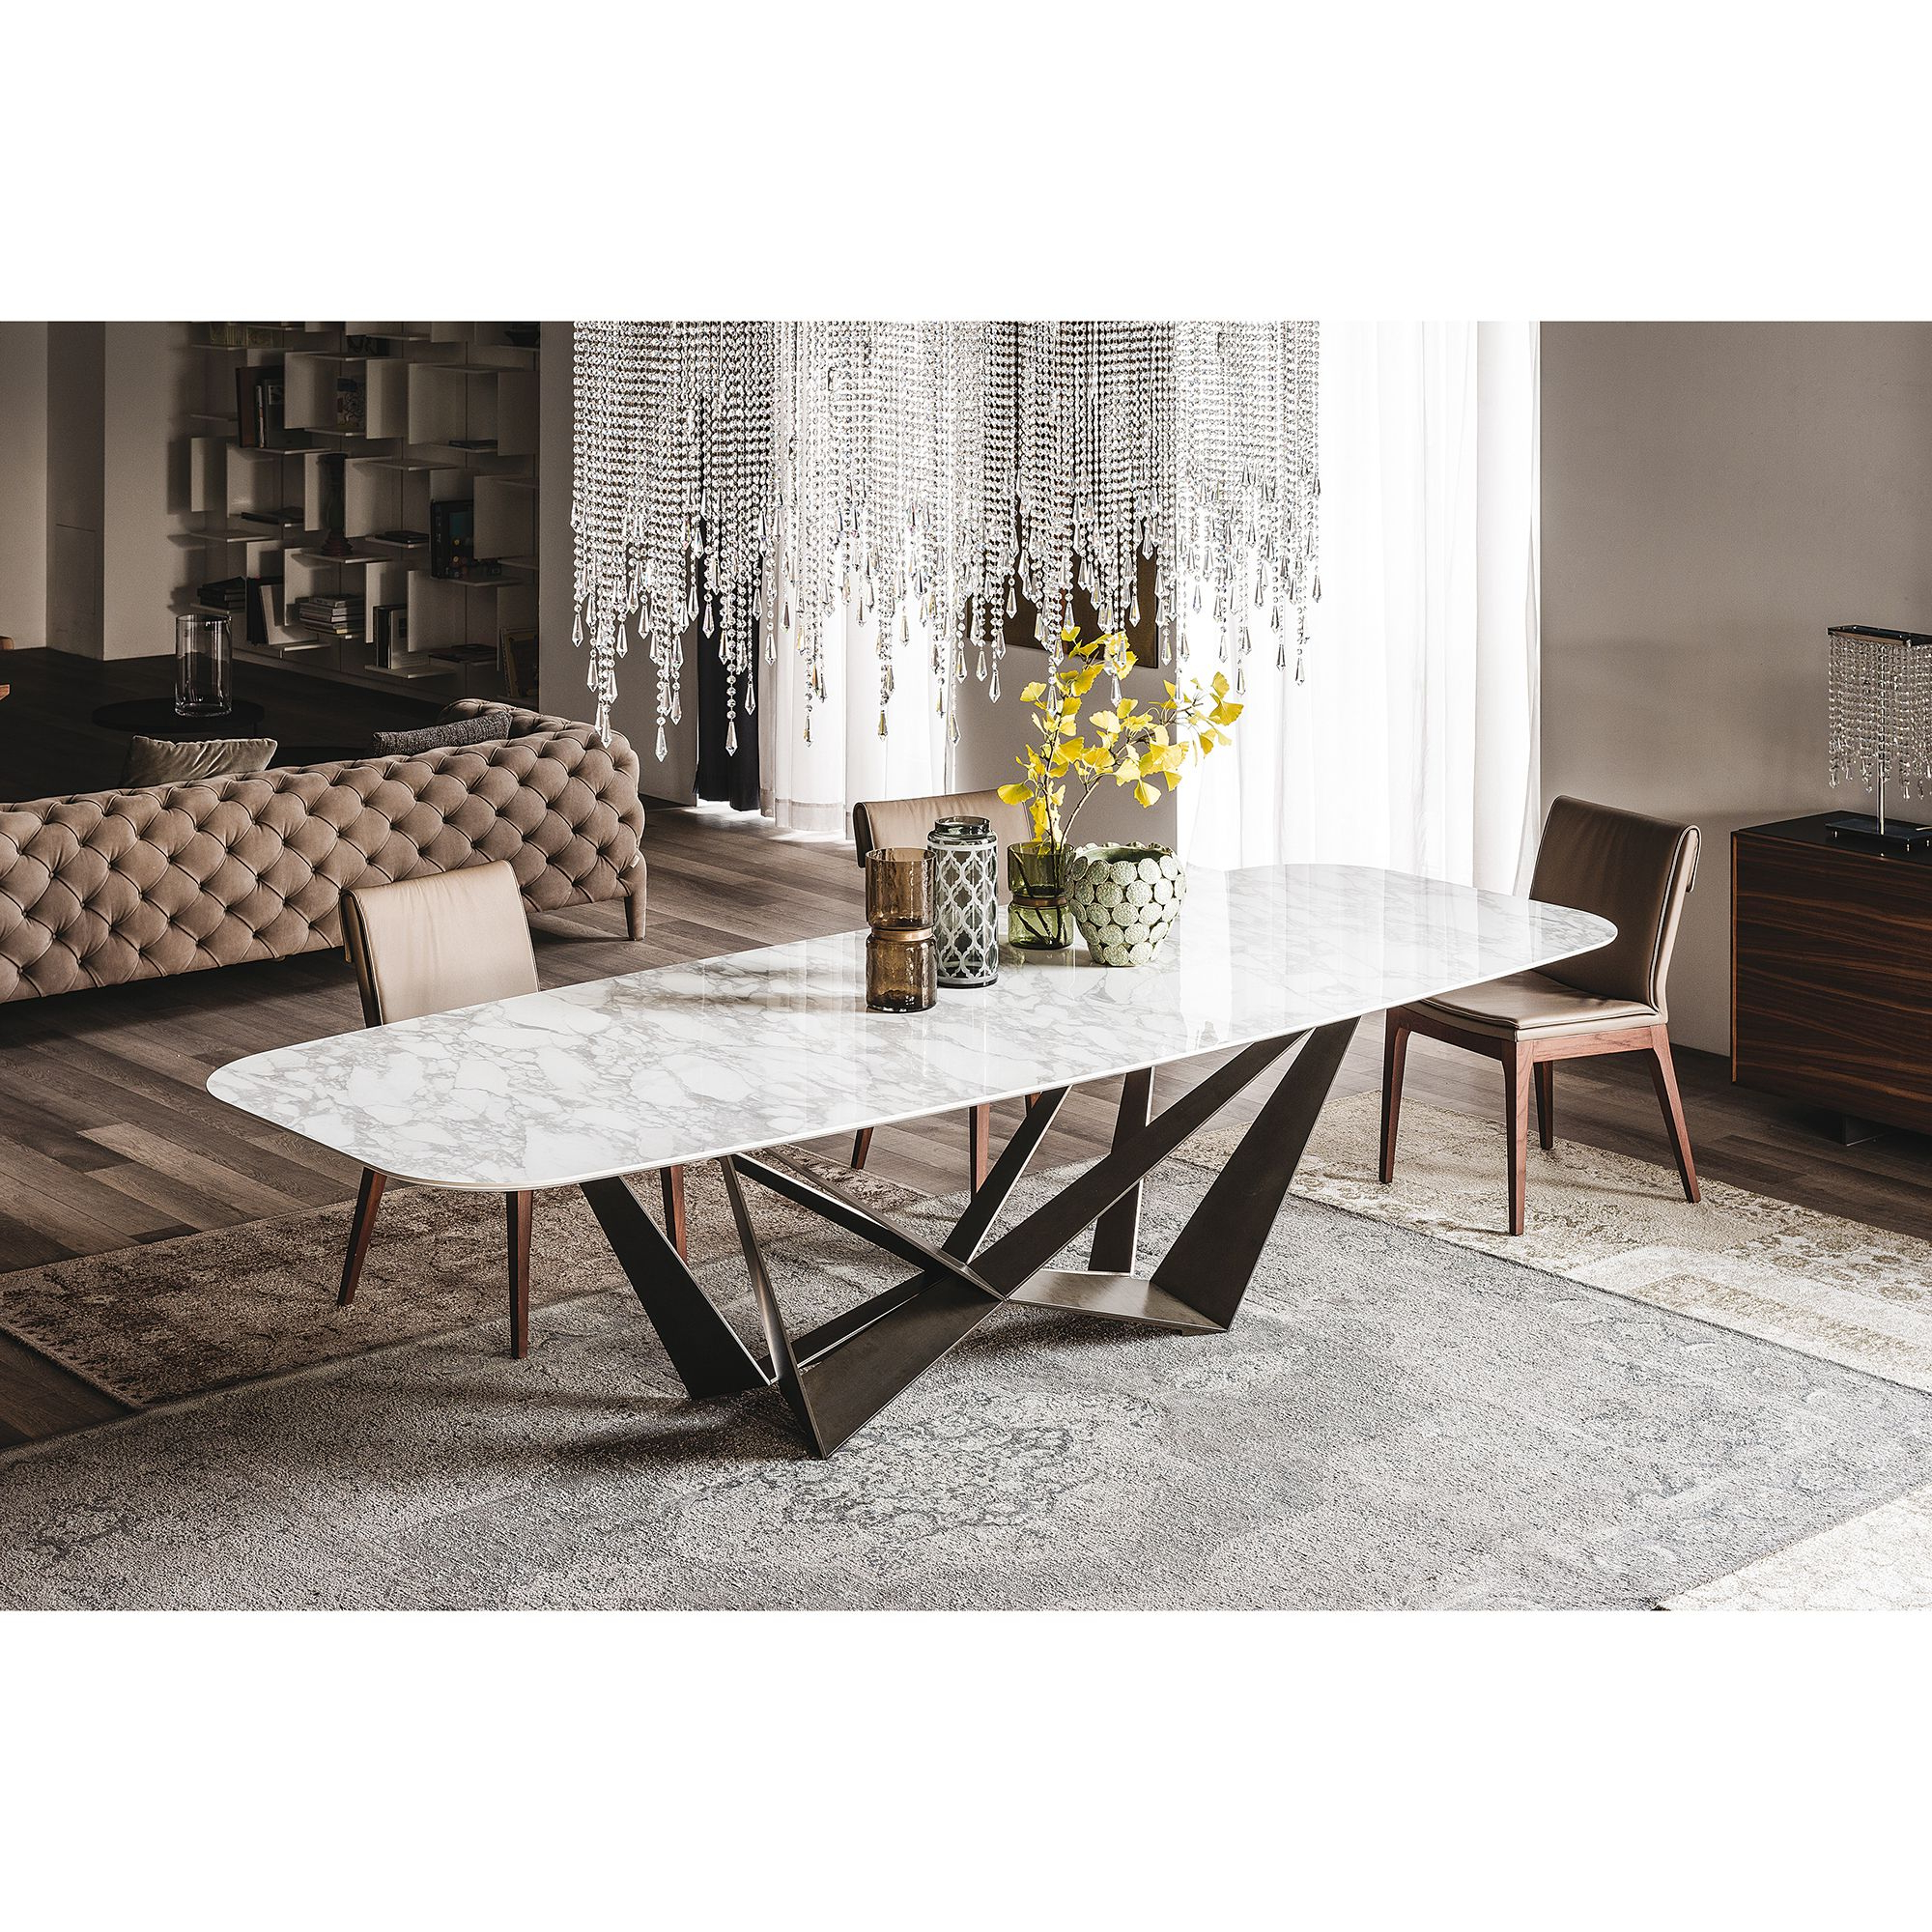 Faux Marble Finish Metal Contemporary Dining Tables Inside Latest Skorpio Dining Table (View 8 of 25)